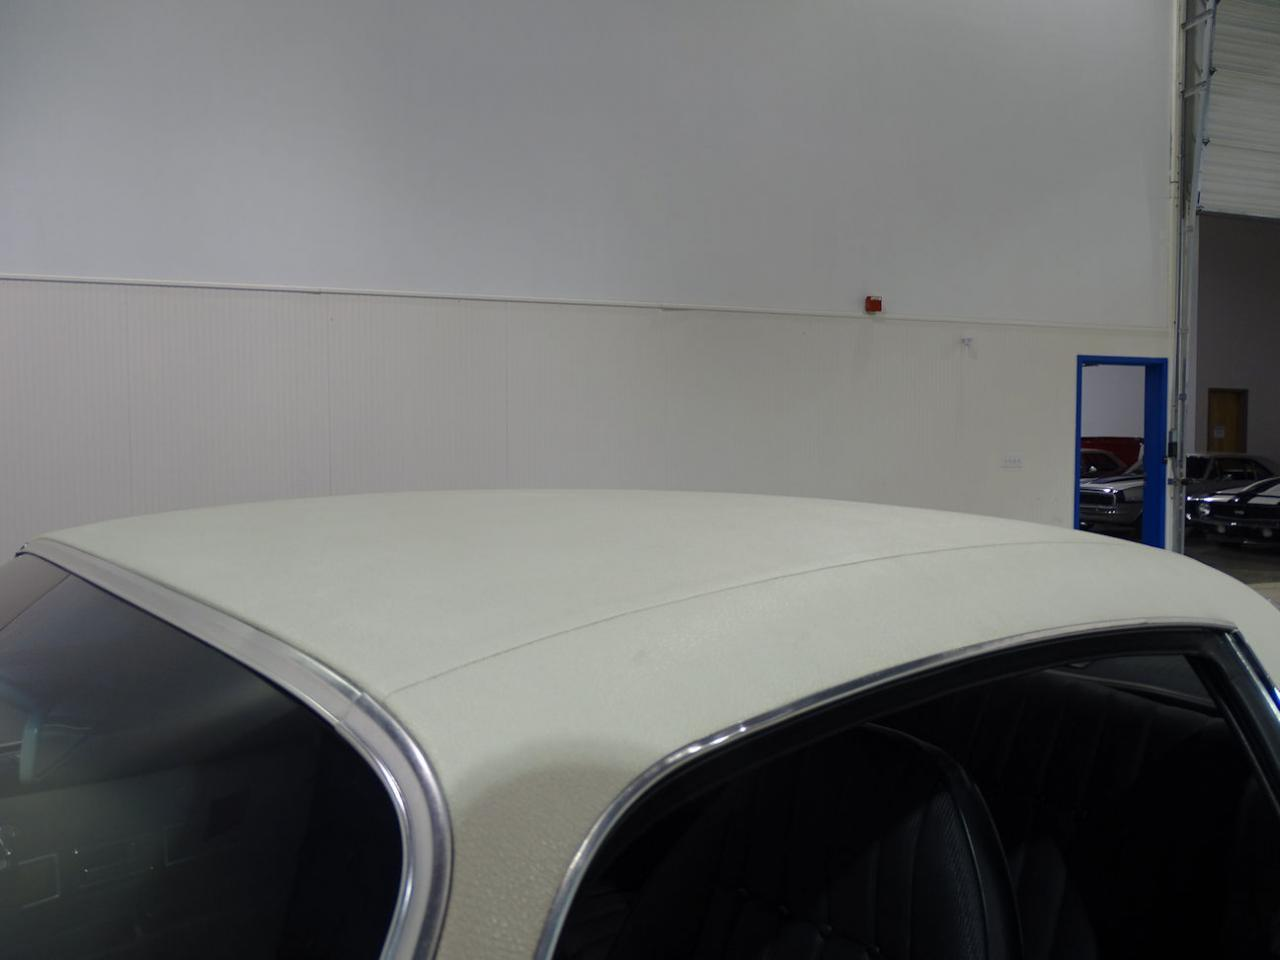 Large Picture of 1973 Chevrolet Camaro located in Indianapolis Indiana - $25,995.00 Offered by Gateway Classic Cars - Indianapolis - NE3J